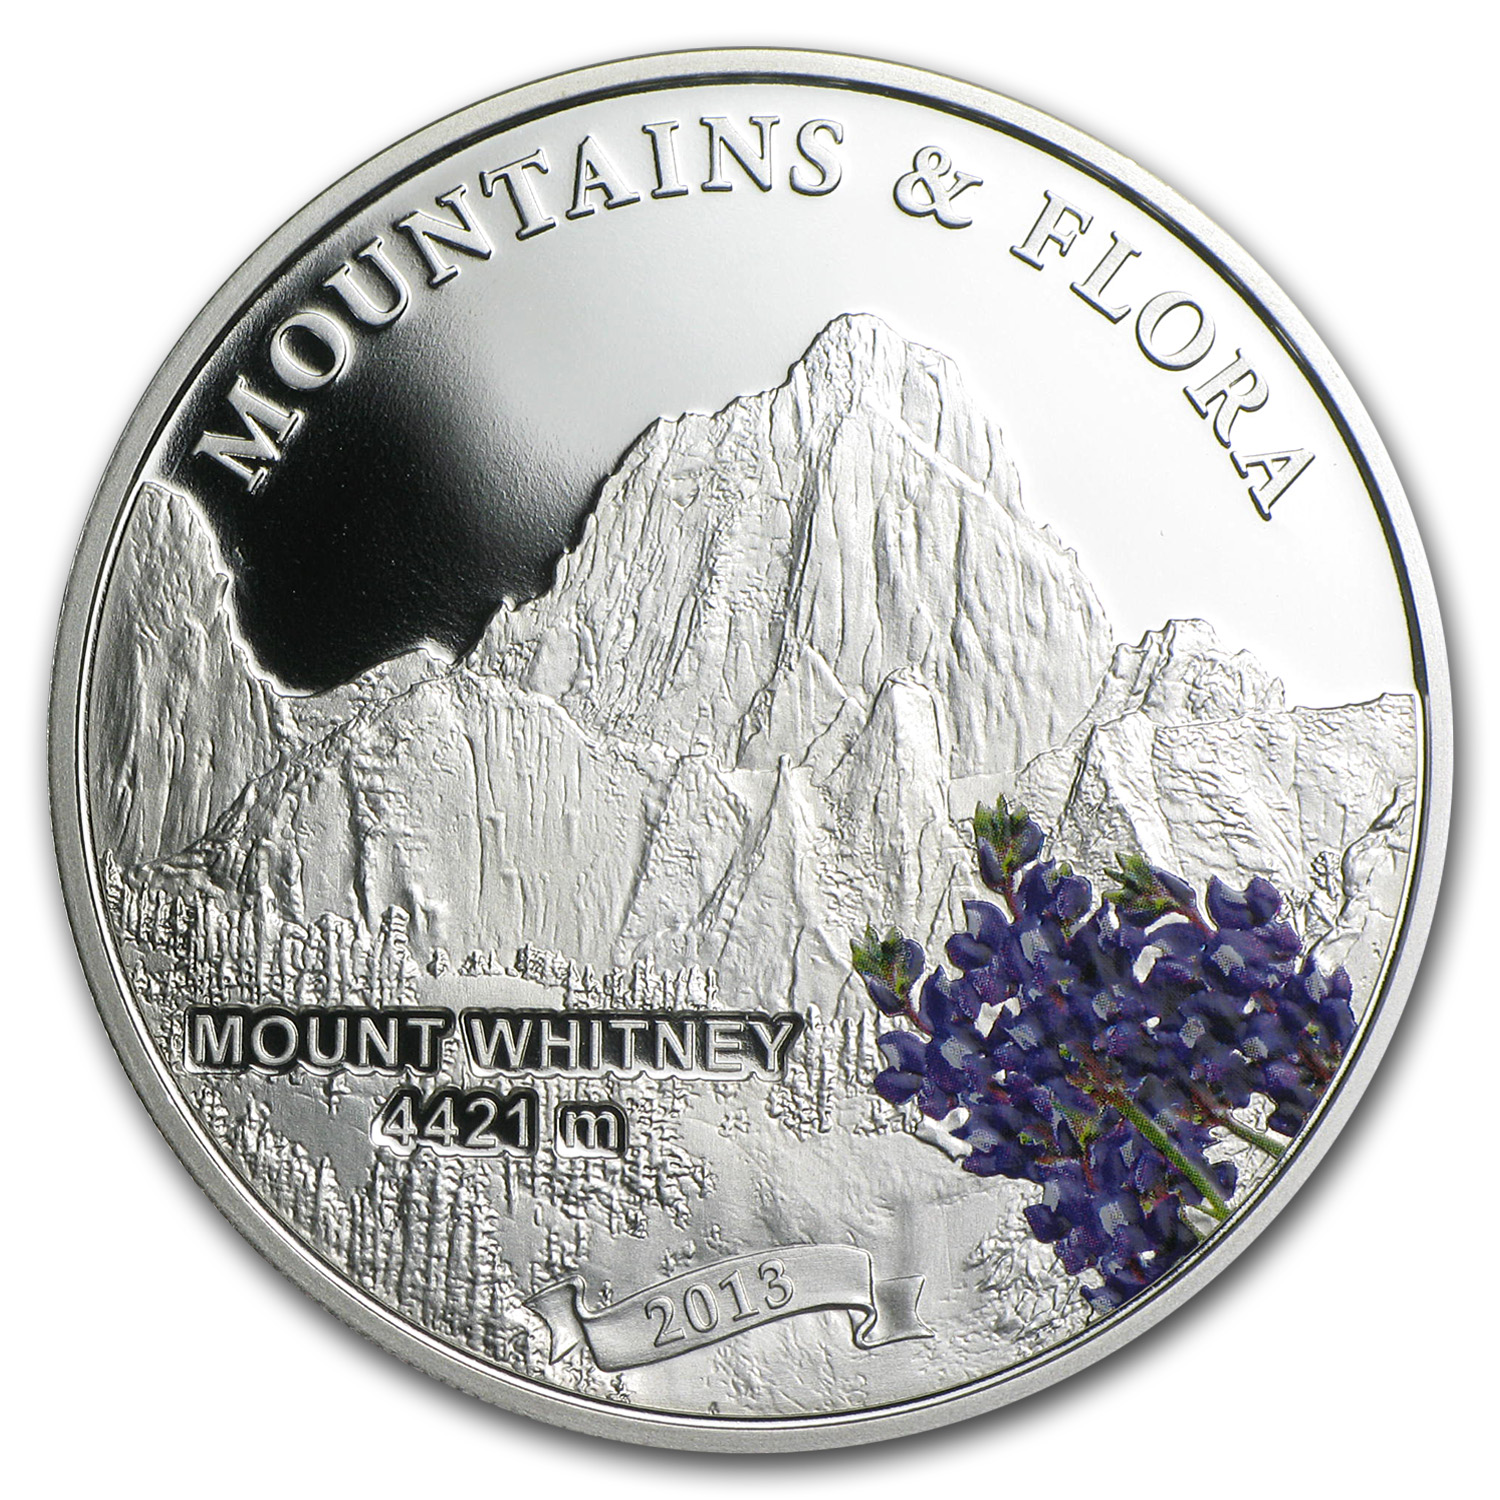 2013 Palau Proof Silver Mountains & Flora Mount Whitney